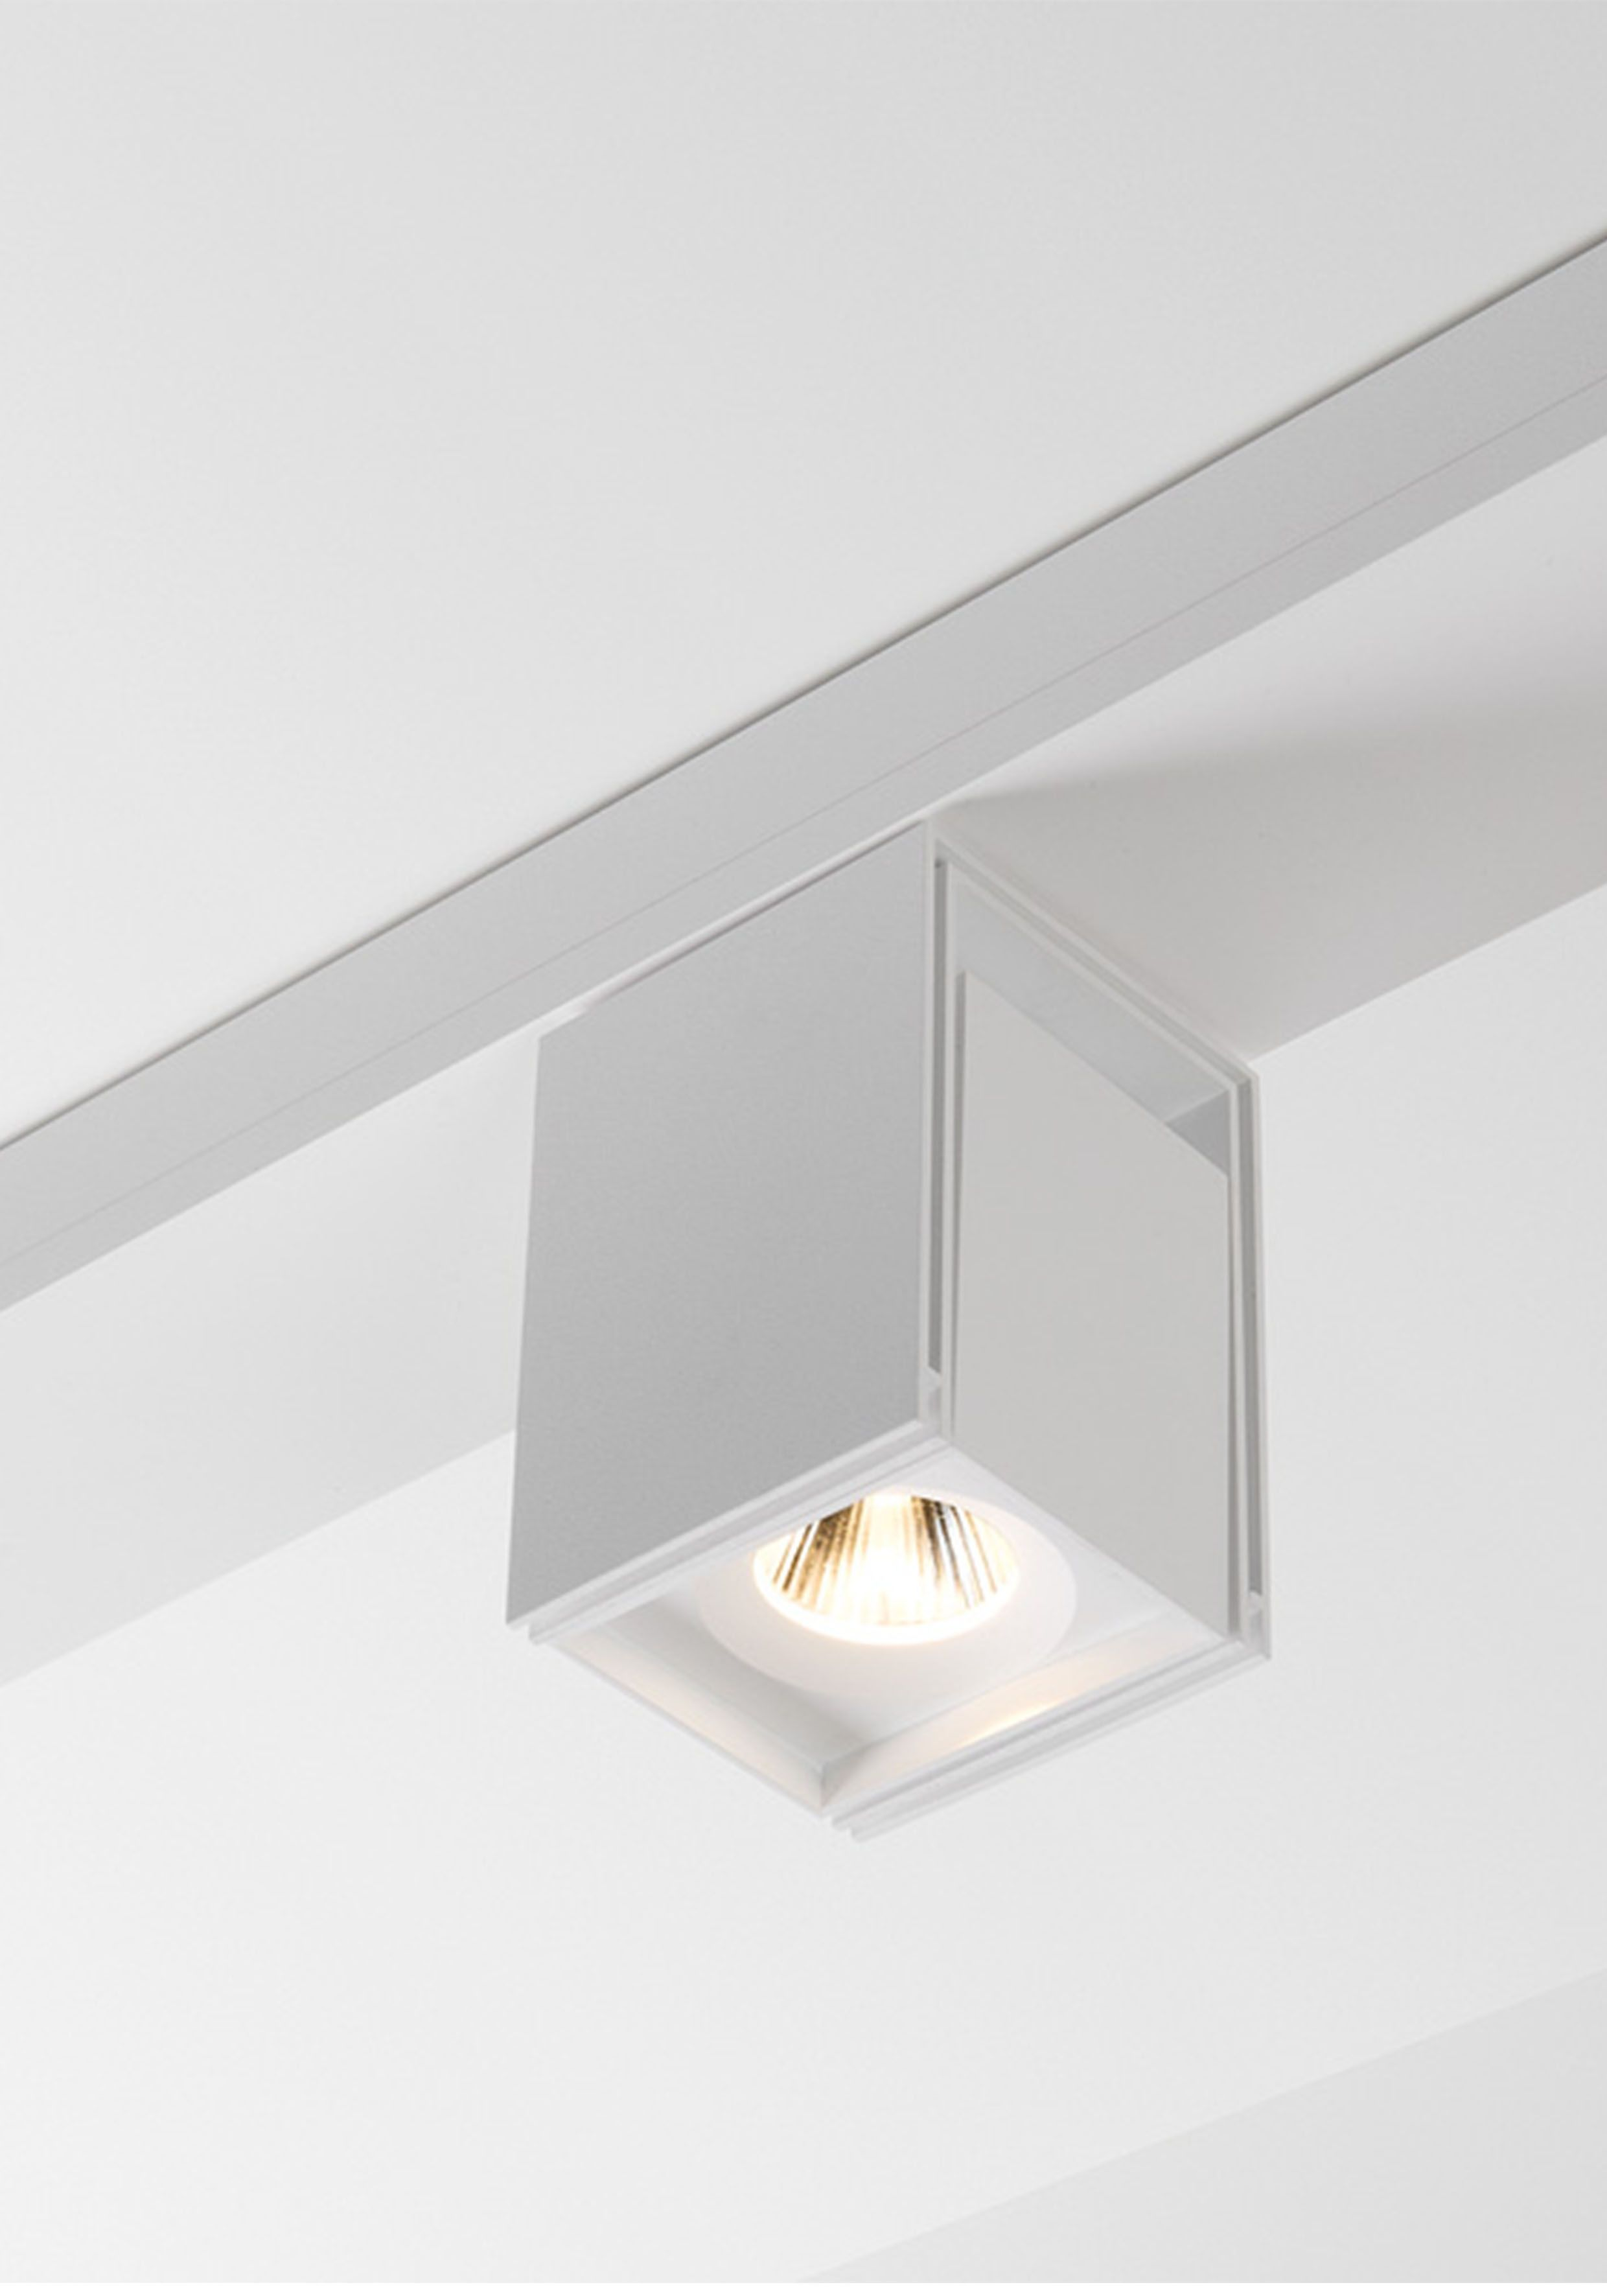 Ceiling Mounted Light Mp78 Fortimo Led By Modular Lighting